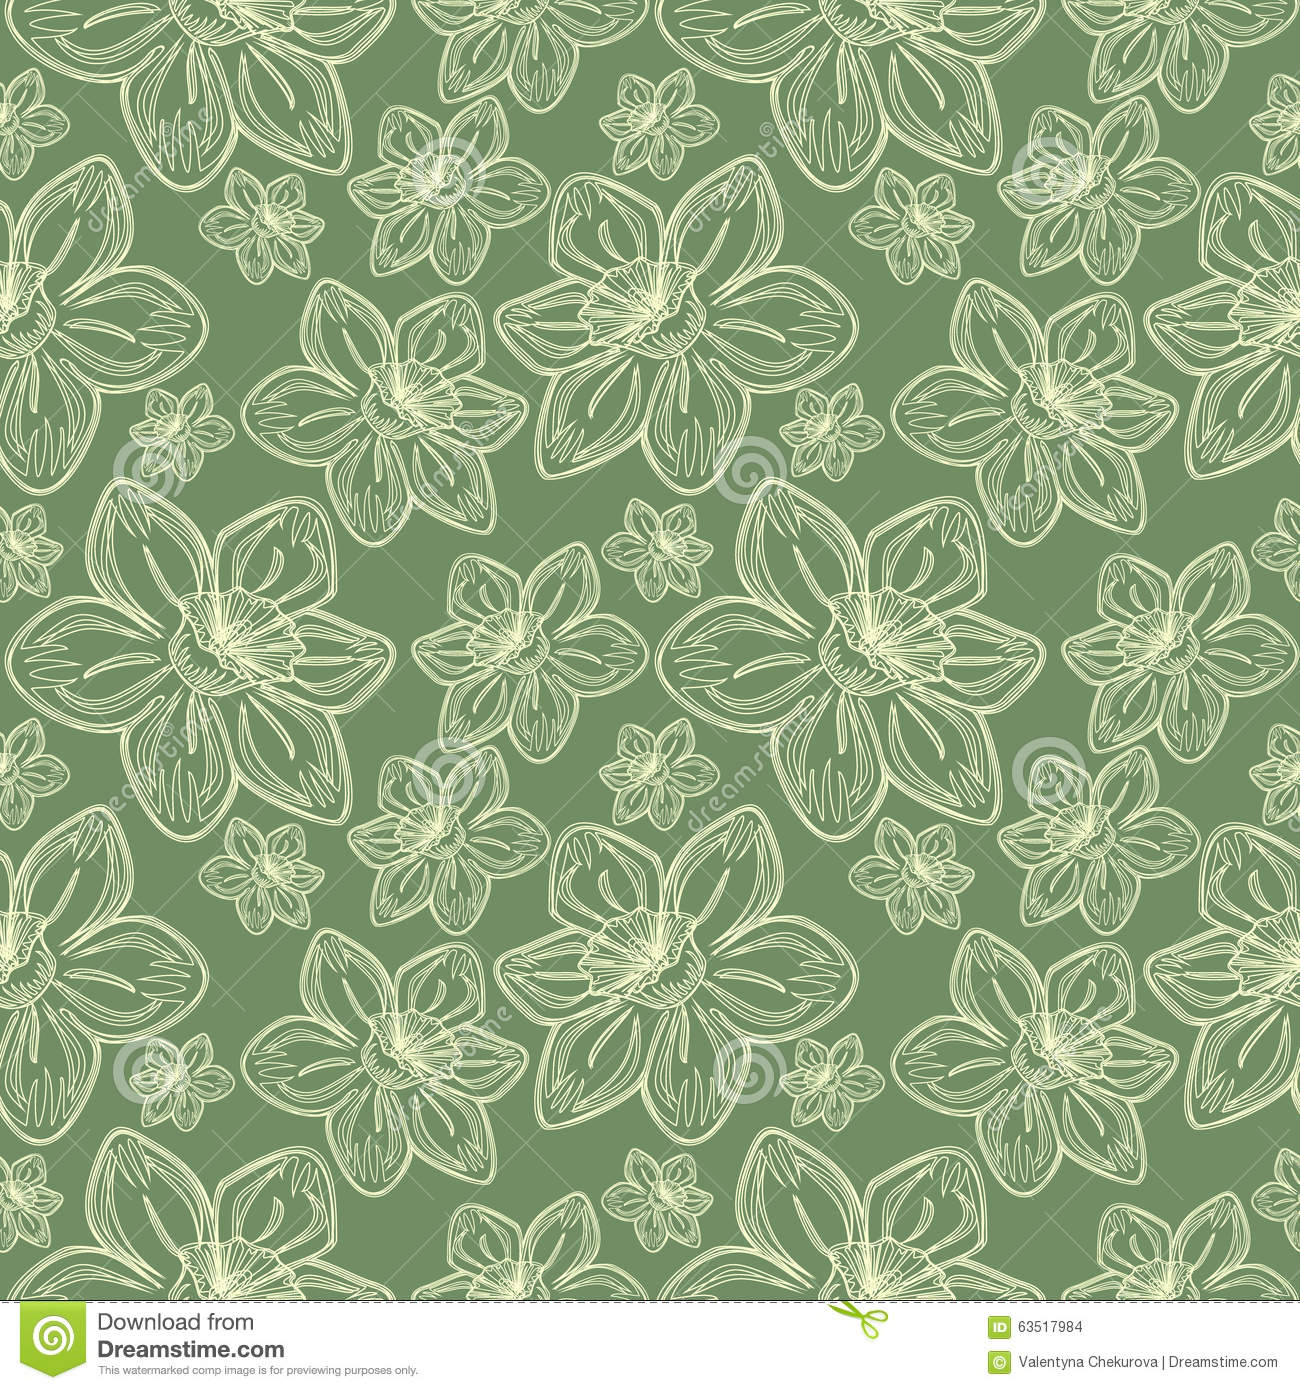 Seamless vector flowers pattern, vintage background with line drawed frowers, over pastel green backdrop